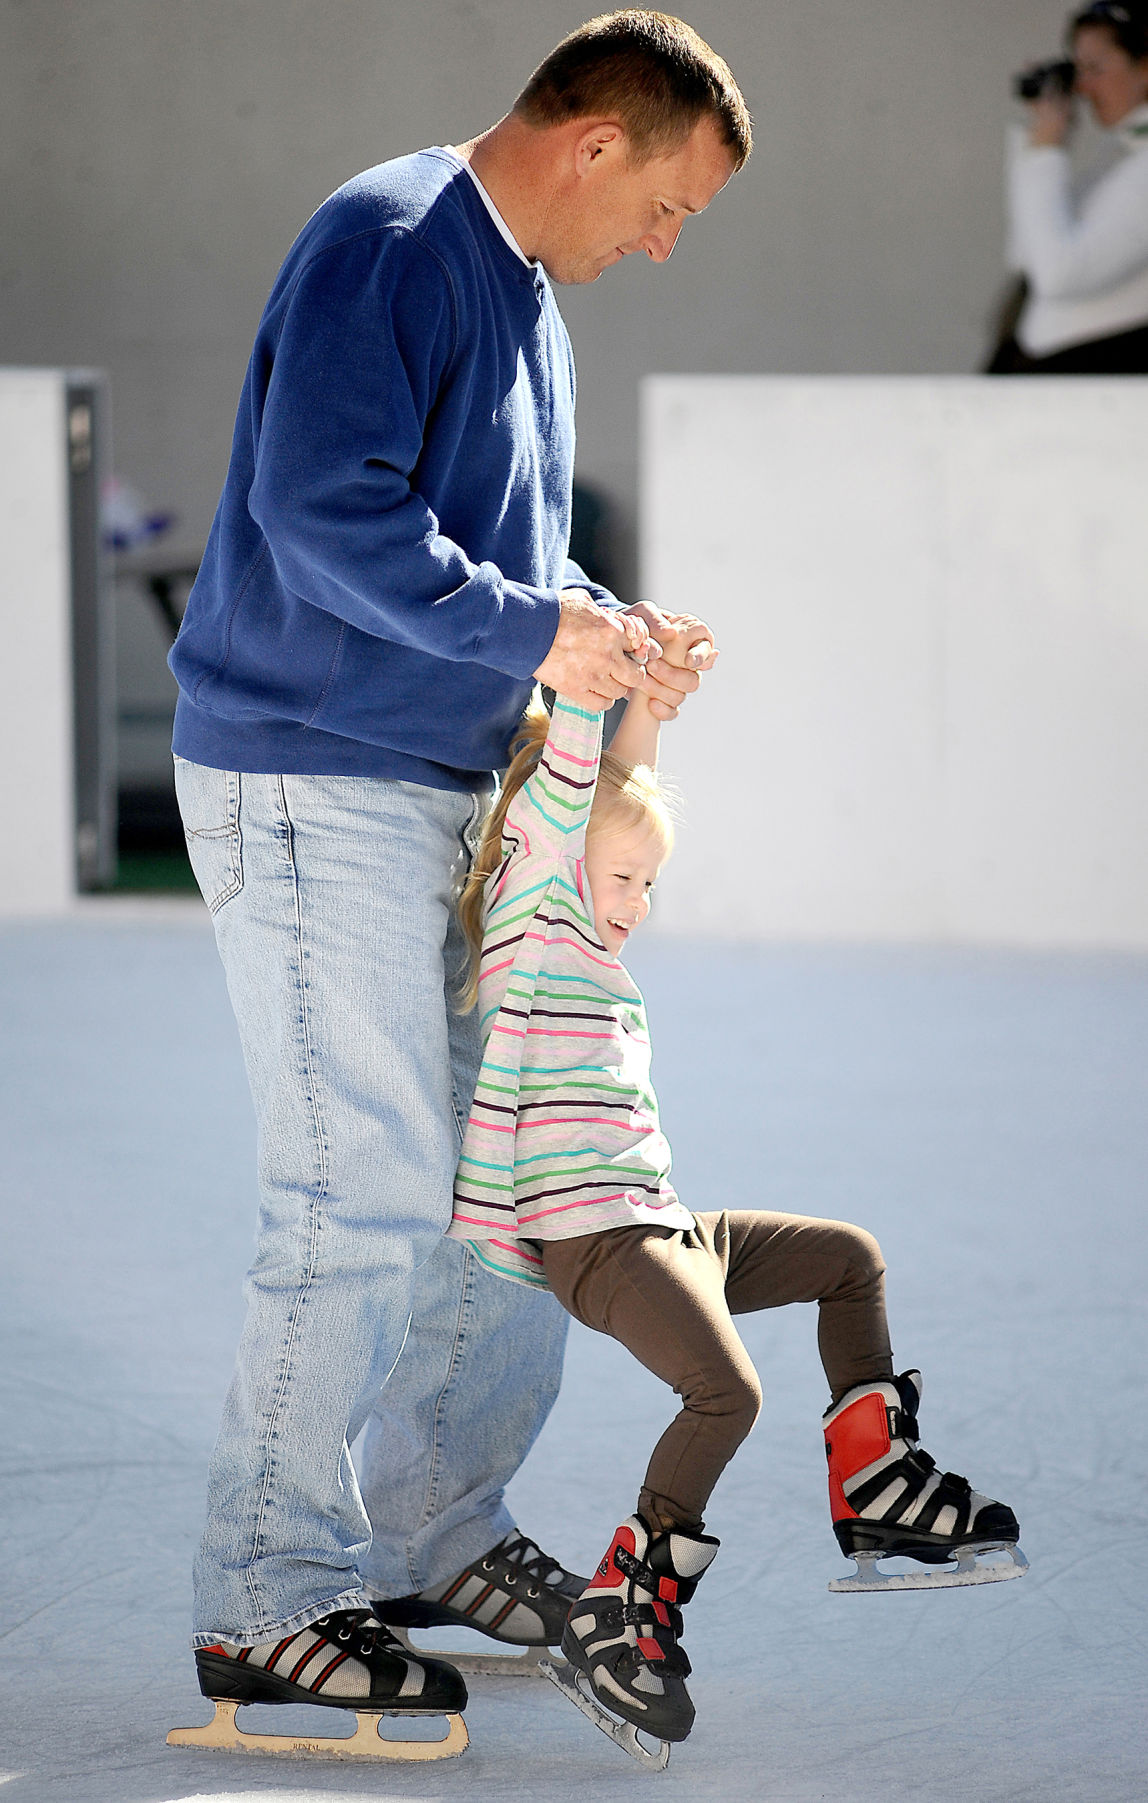 Roller skates jcpenney - Ice Rink Pic 1